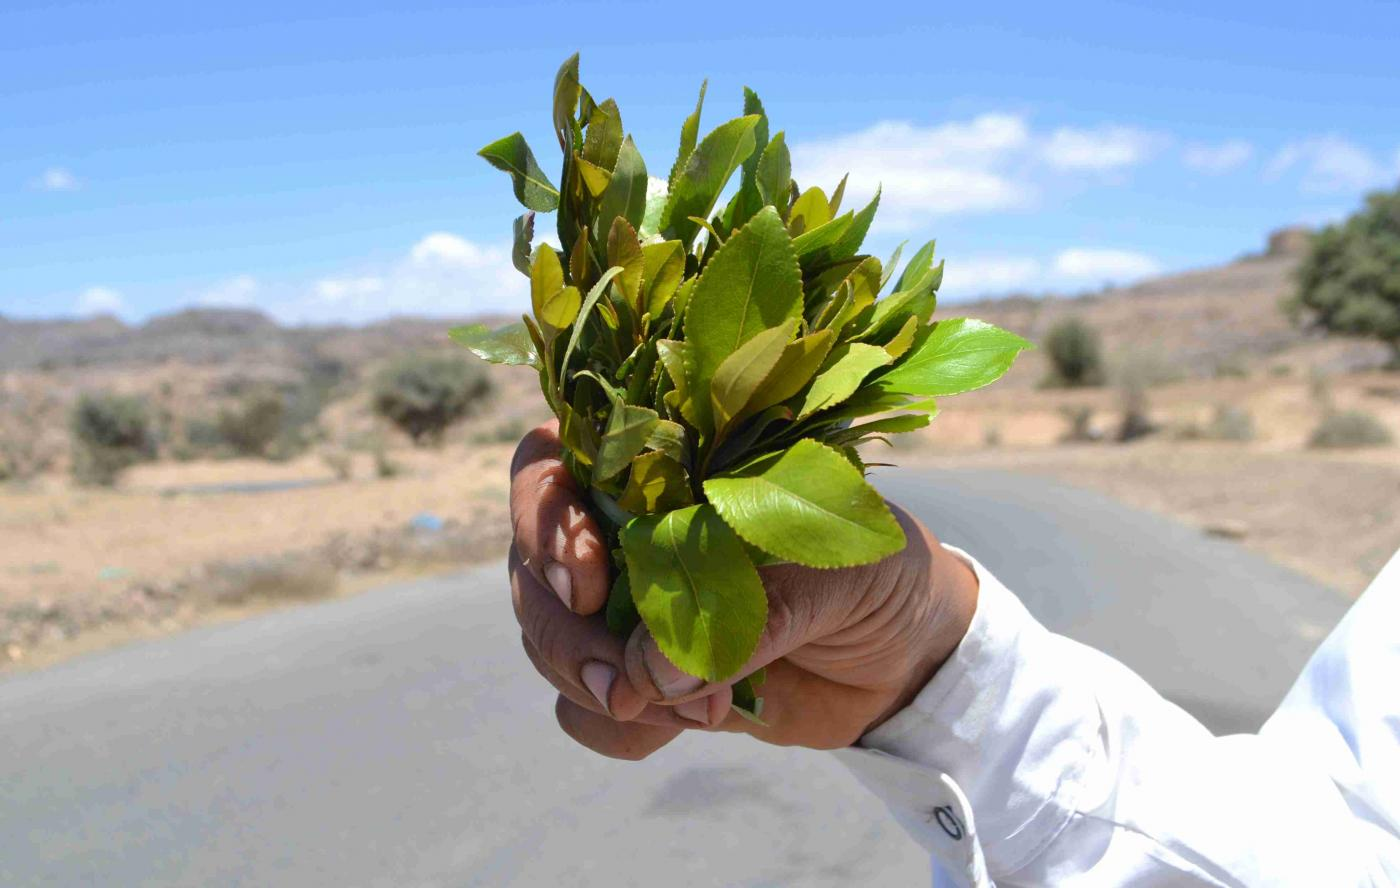 In some parts of Yemen, qat is replacing fruit trees as farmers' main crop (MEE)